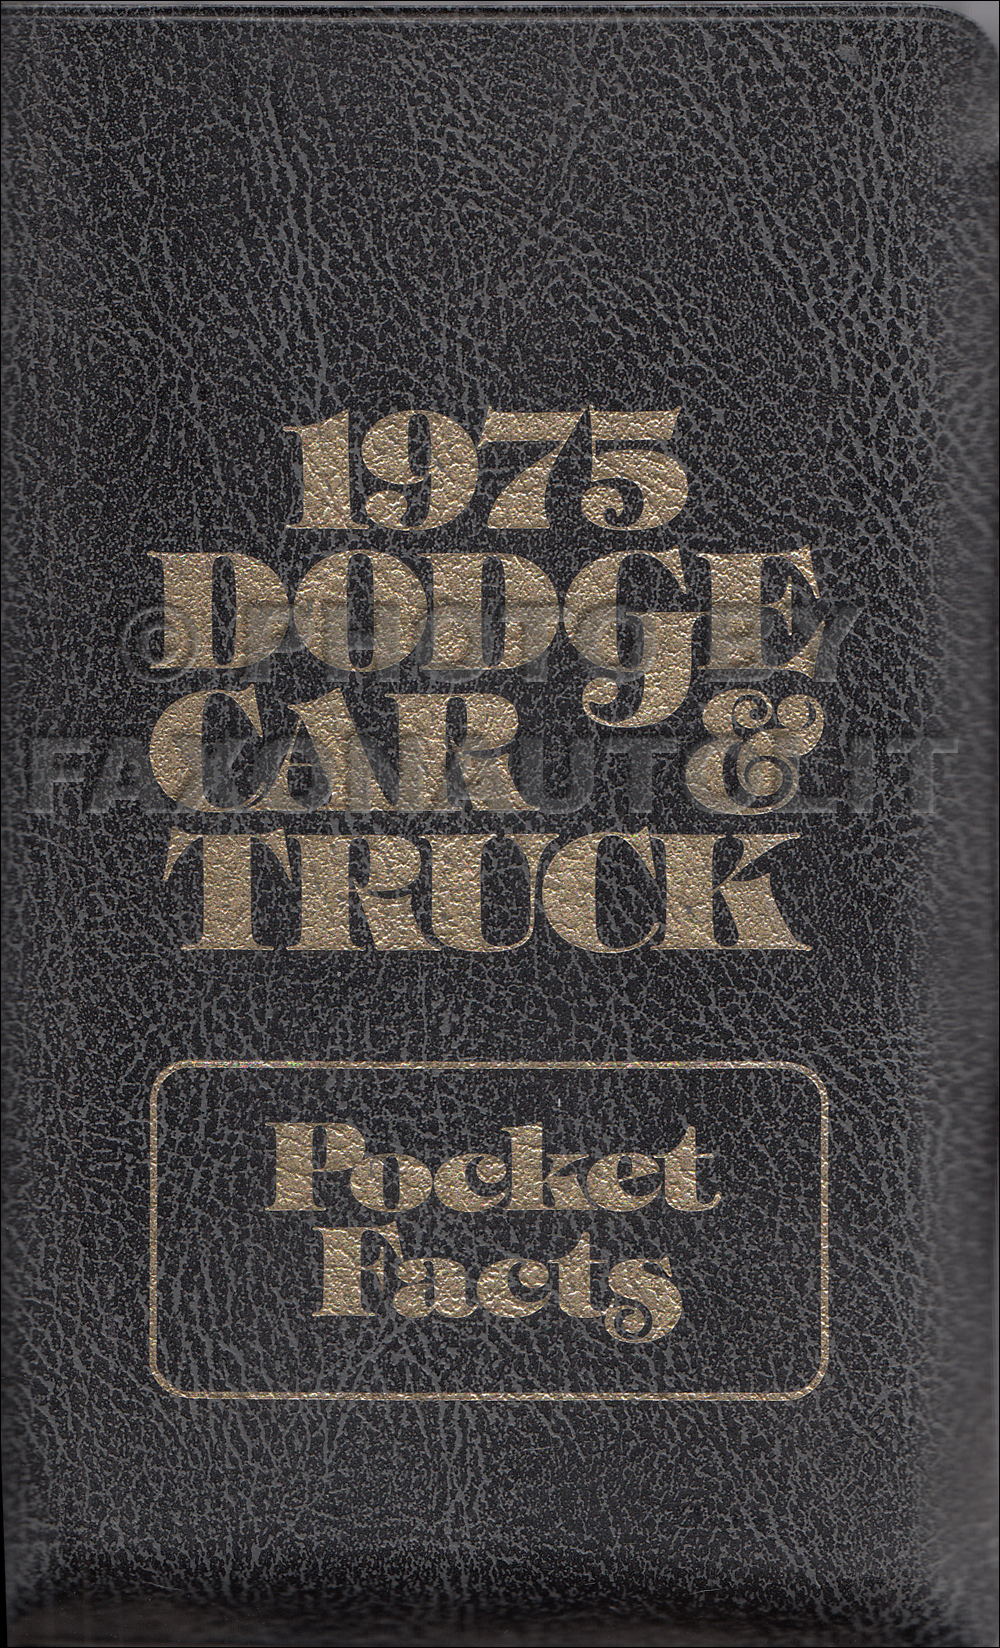 1975 Dodge Pocket Size Salesmen's Confidential Facts Guide Original